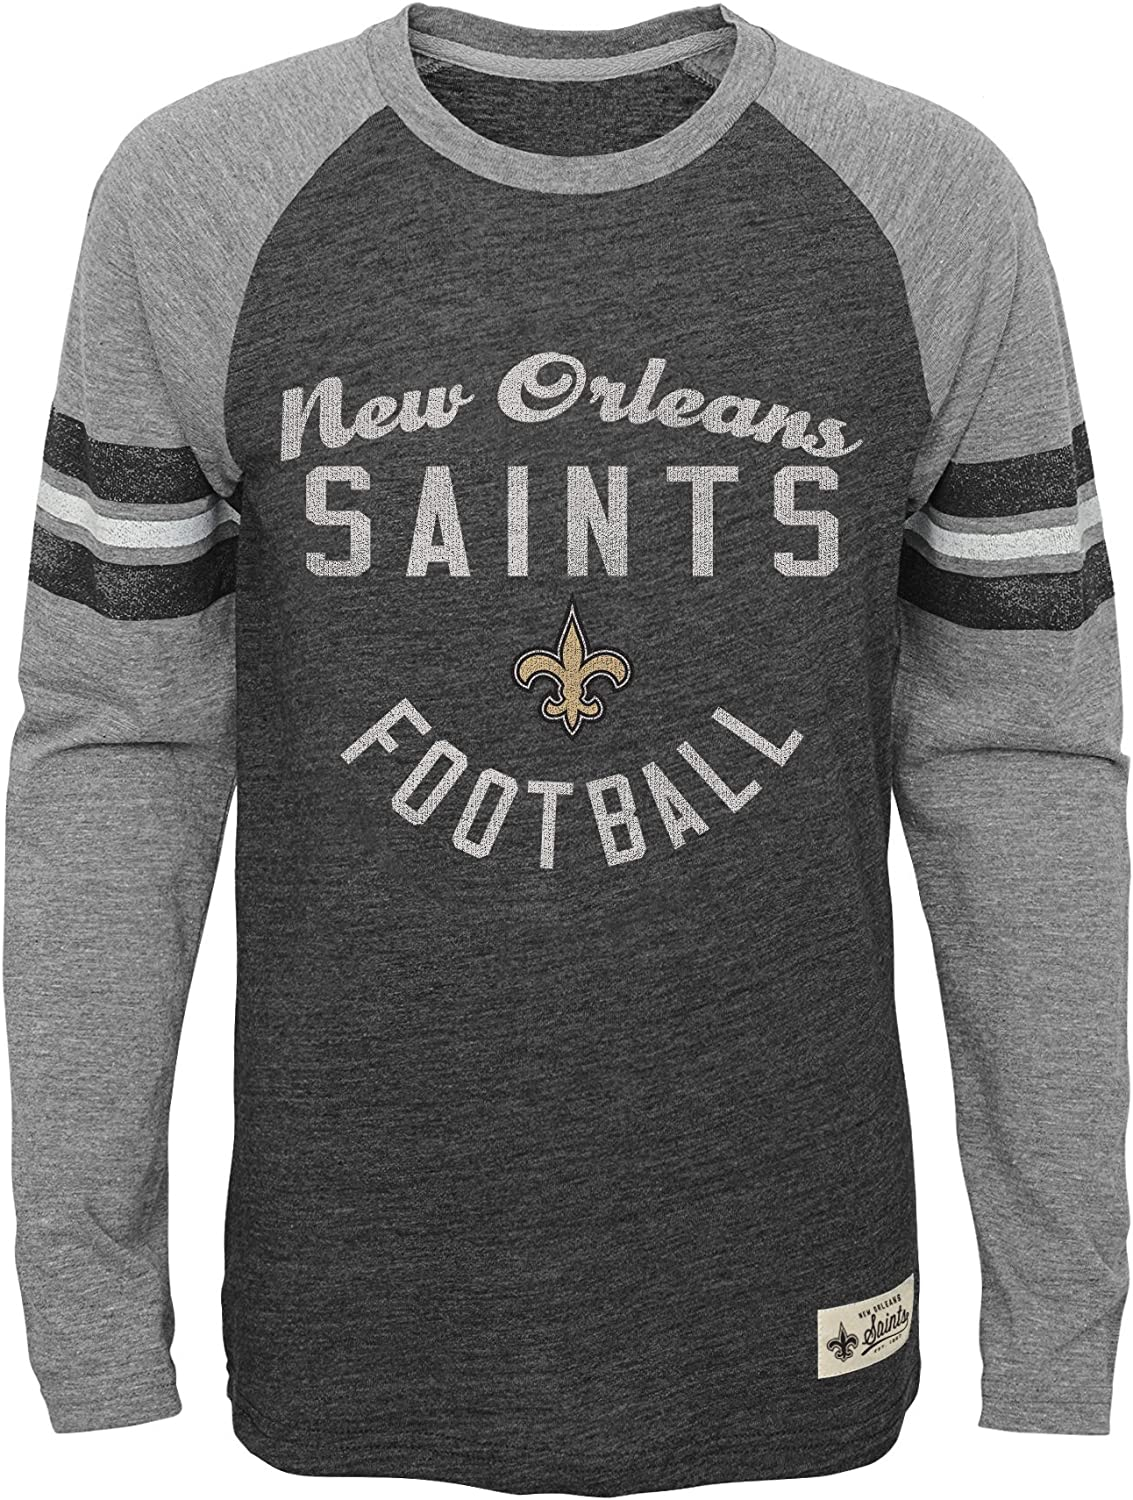 NFL by Outerstuff Boys NFL Kids /& Youth Football Pride Long Sleeve Tee Heather Black Kids Small 4